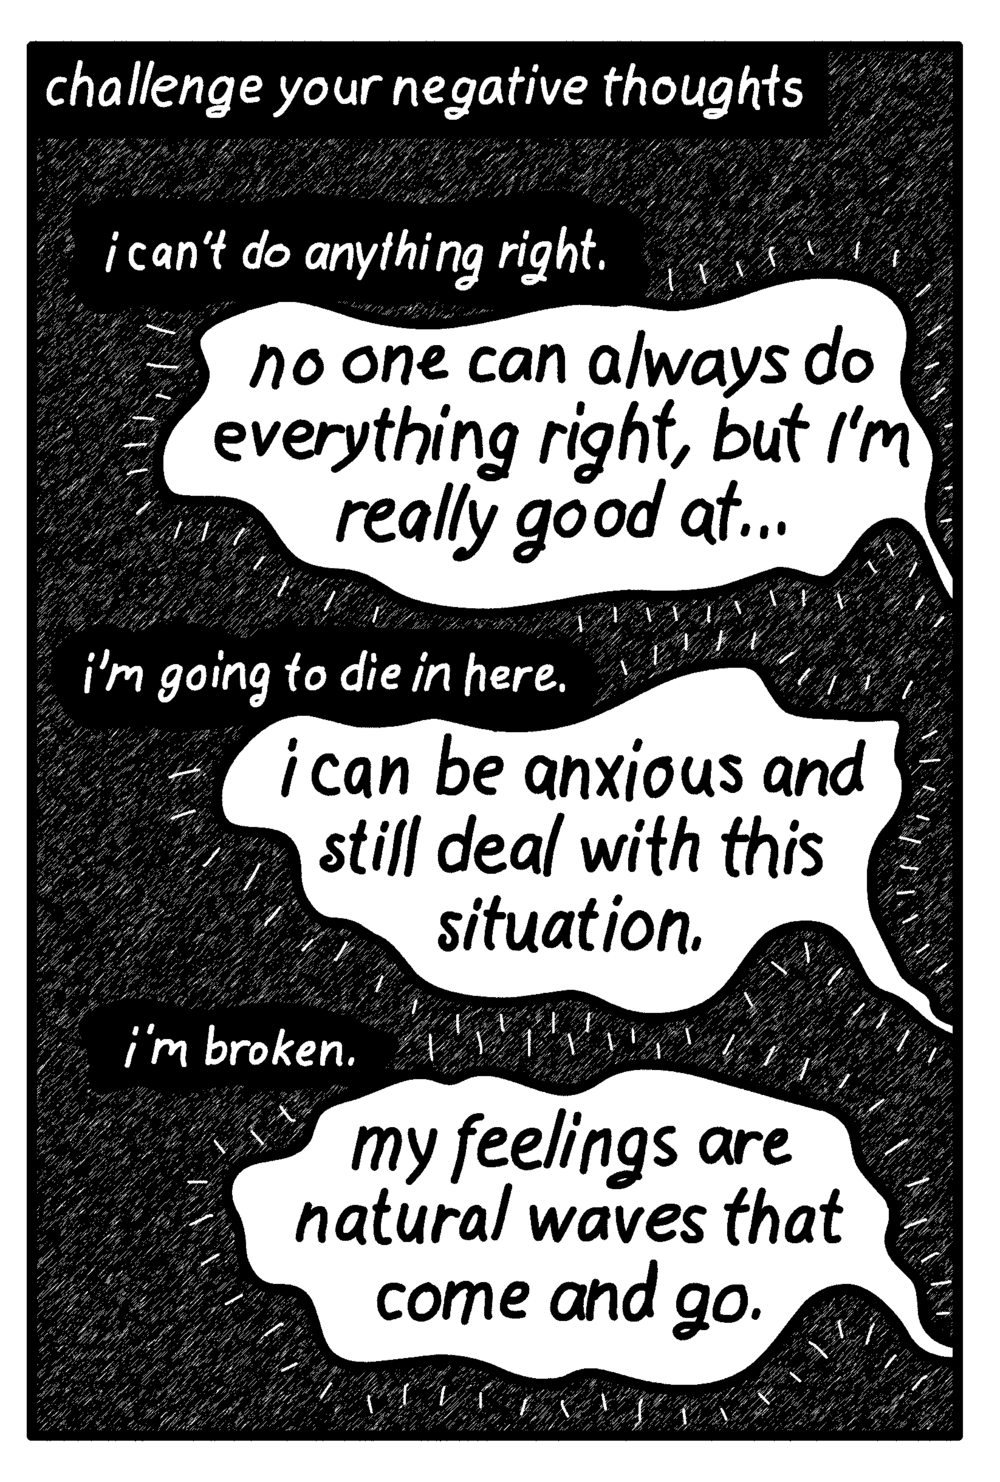 page 6bw.png